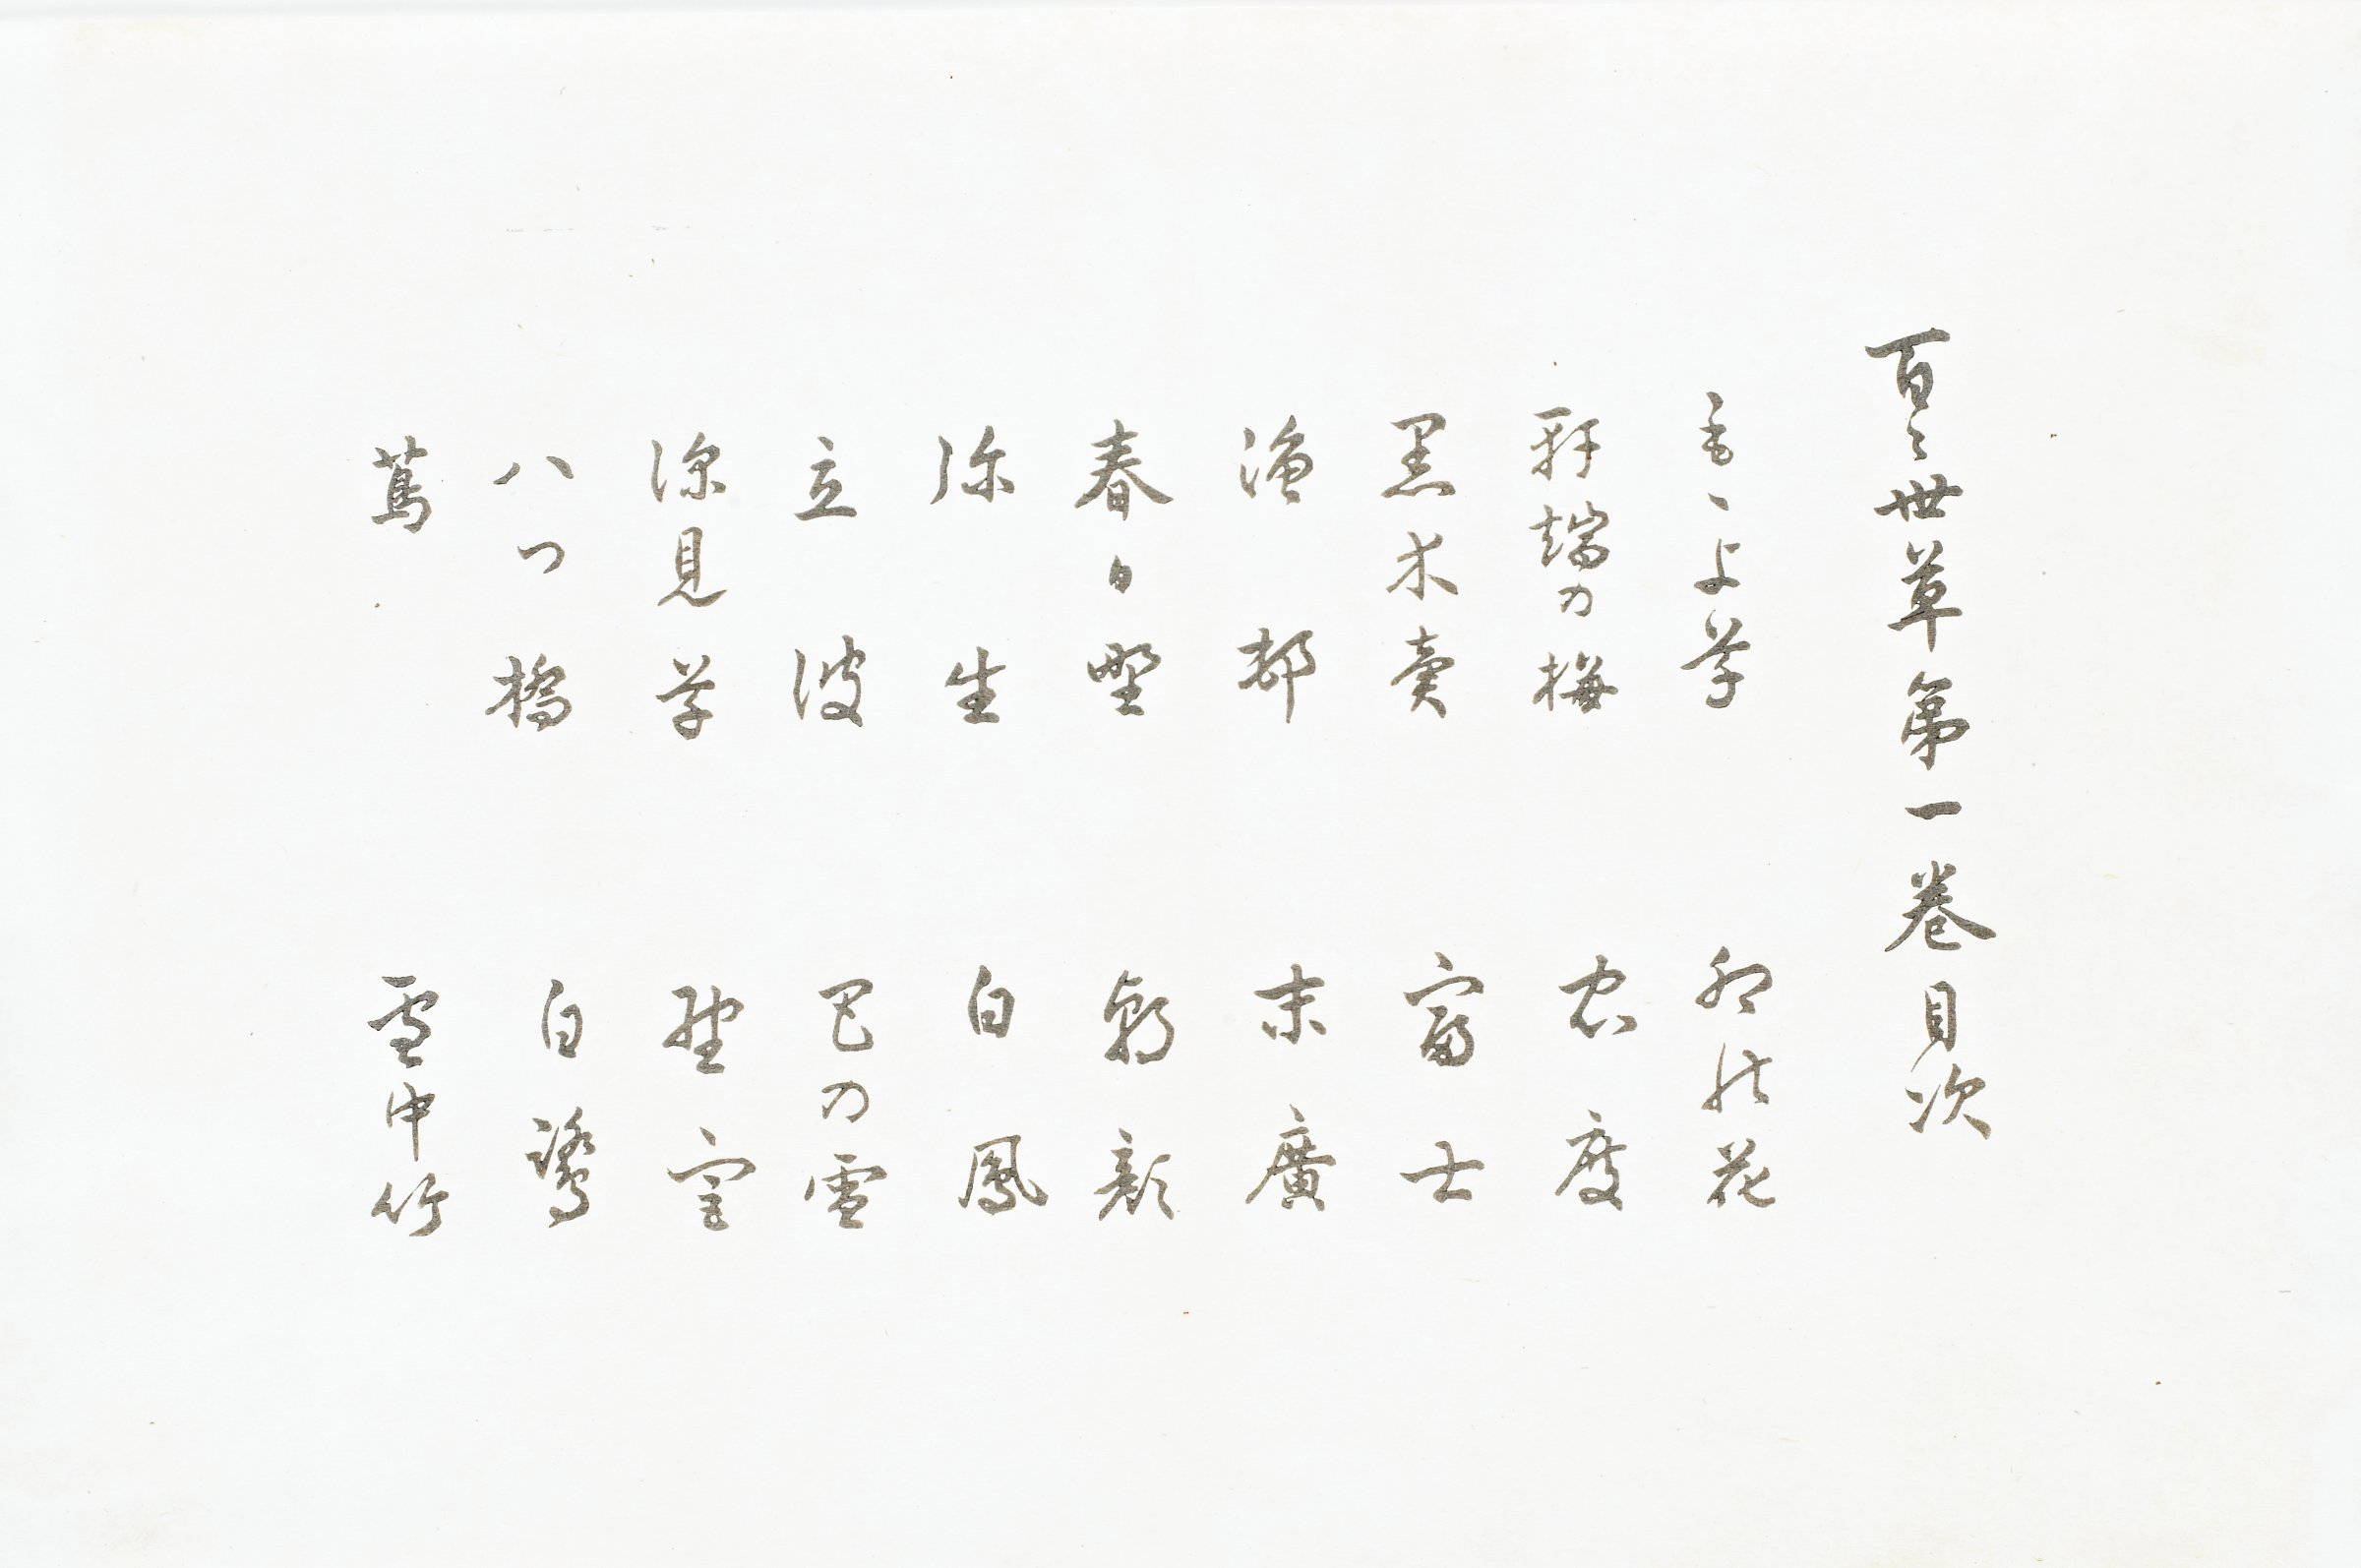 Table of contents consisting of twenty titles and one line of characters